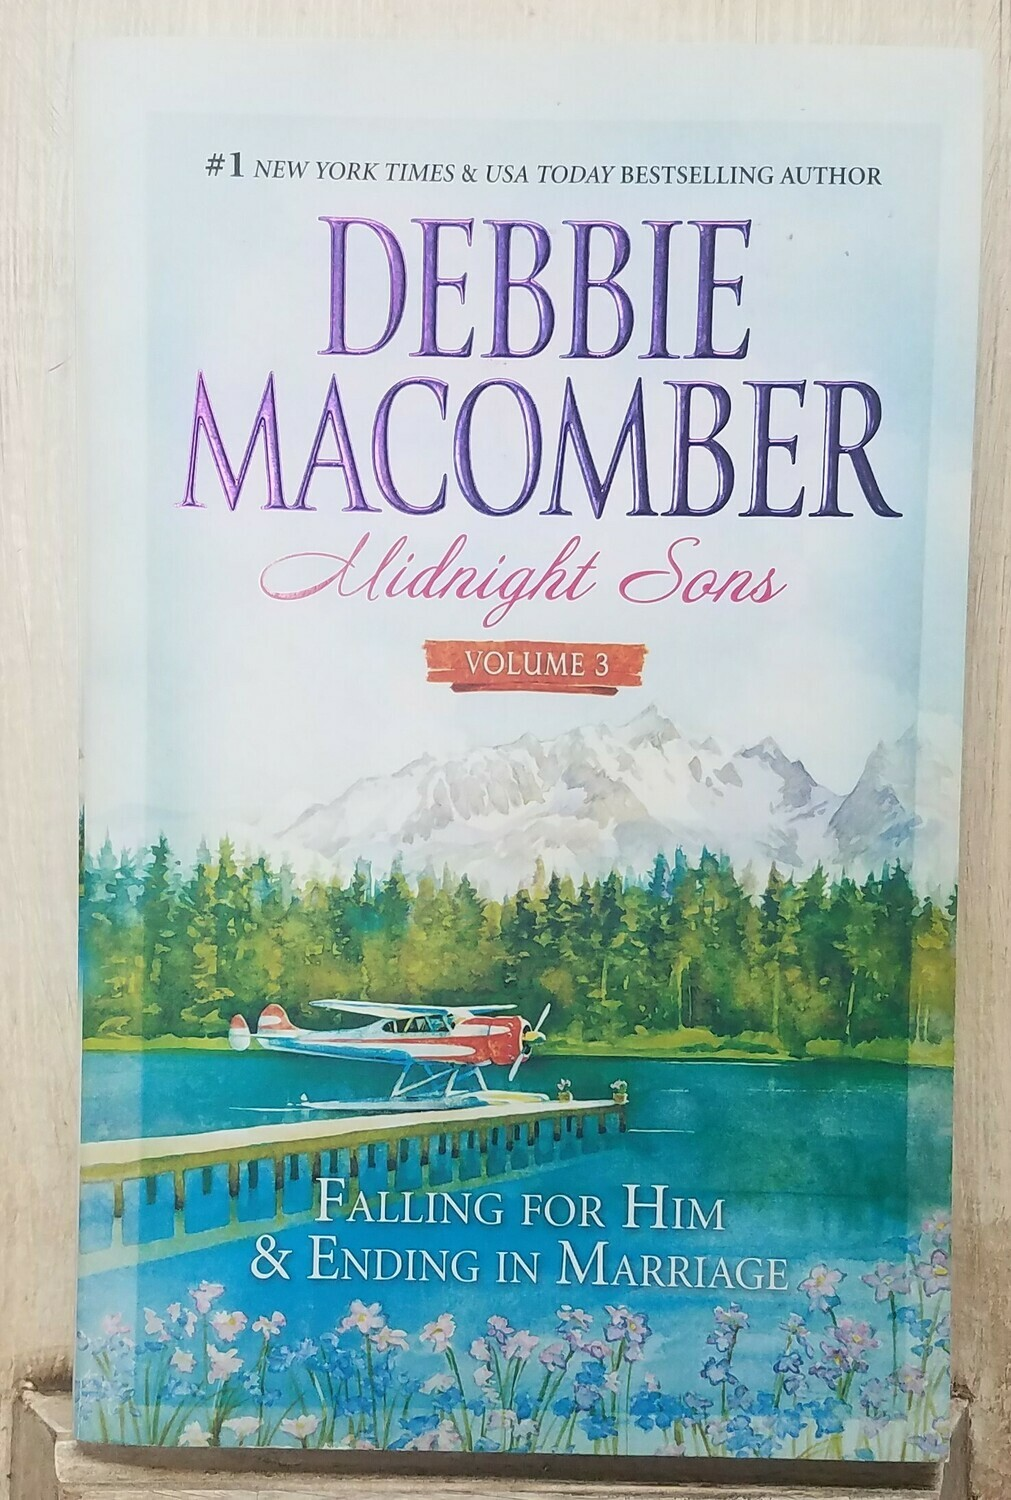 Midnight Sons: Vol. 3 - Falling for Him and Ending in Marriage by Debbie Macomber